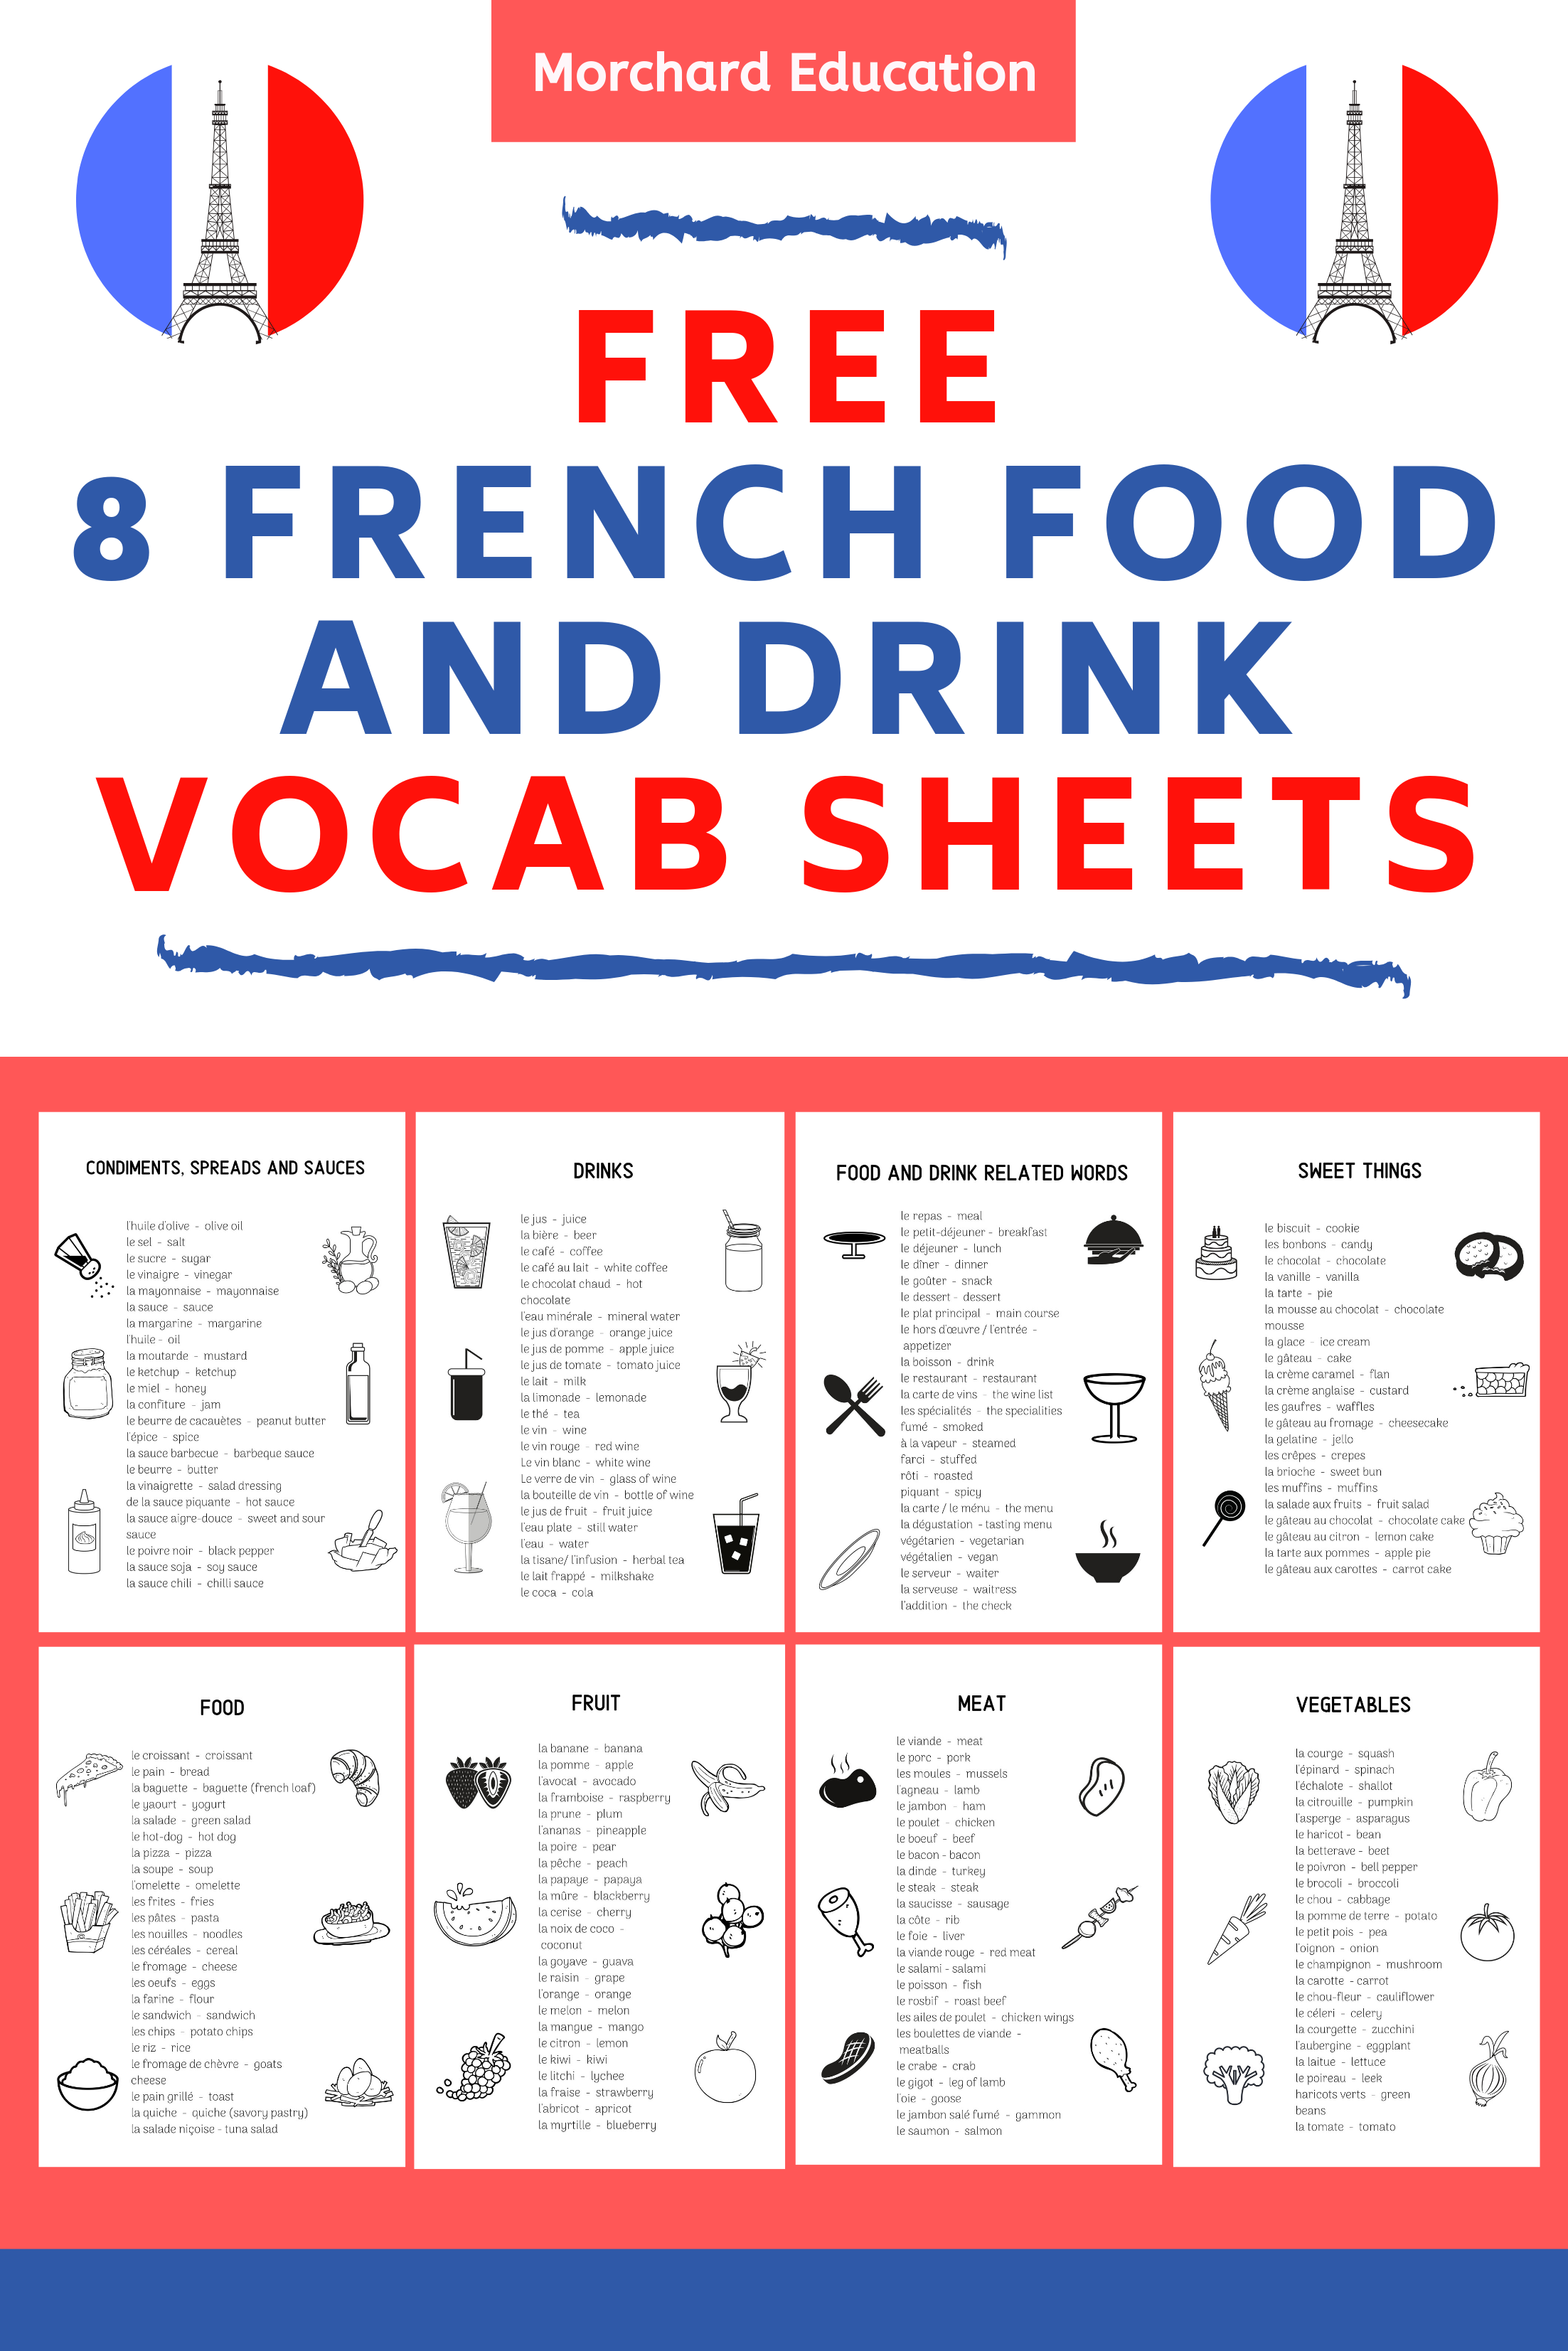 Free French Food And Drink Vocab Sheets In 2020 French Food